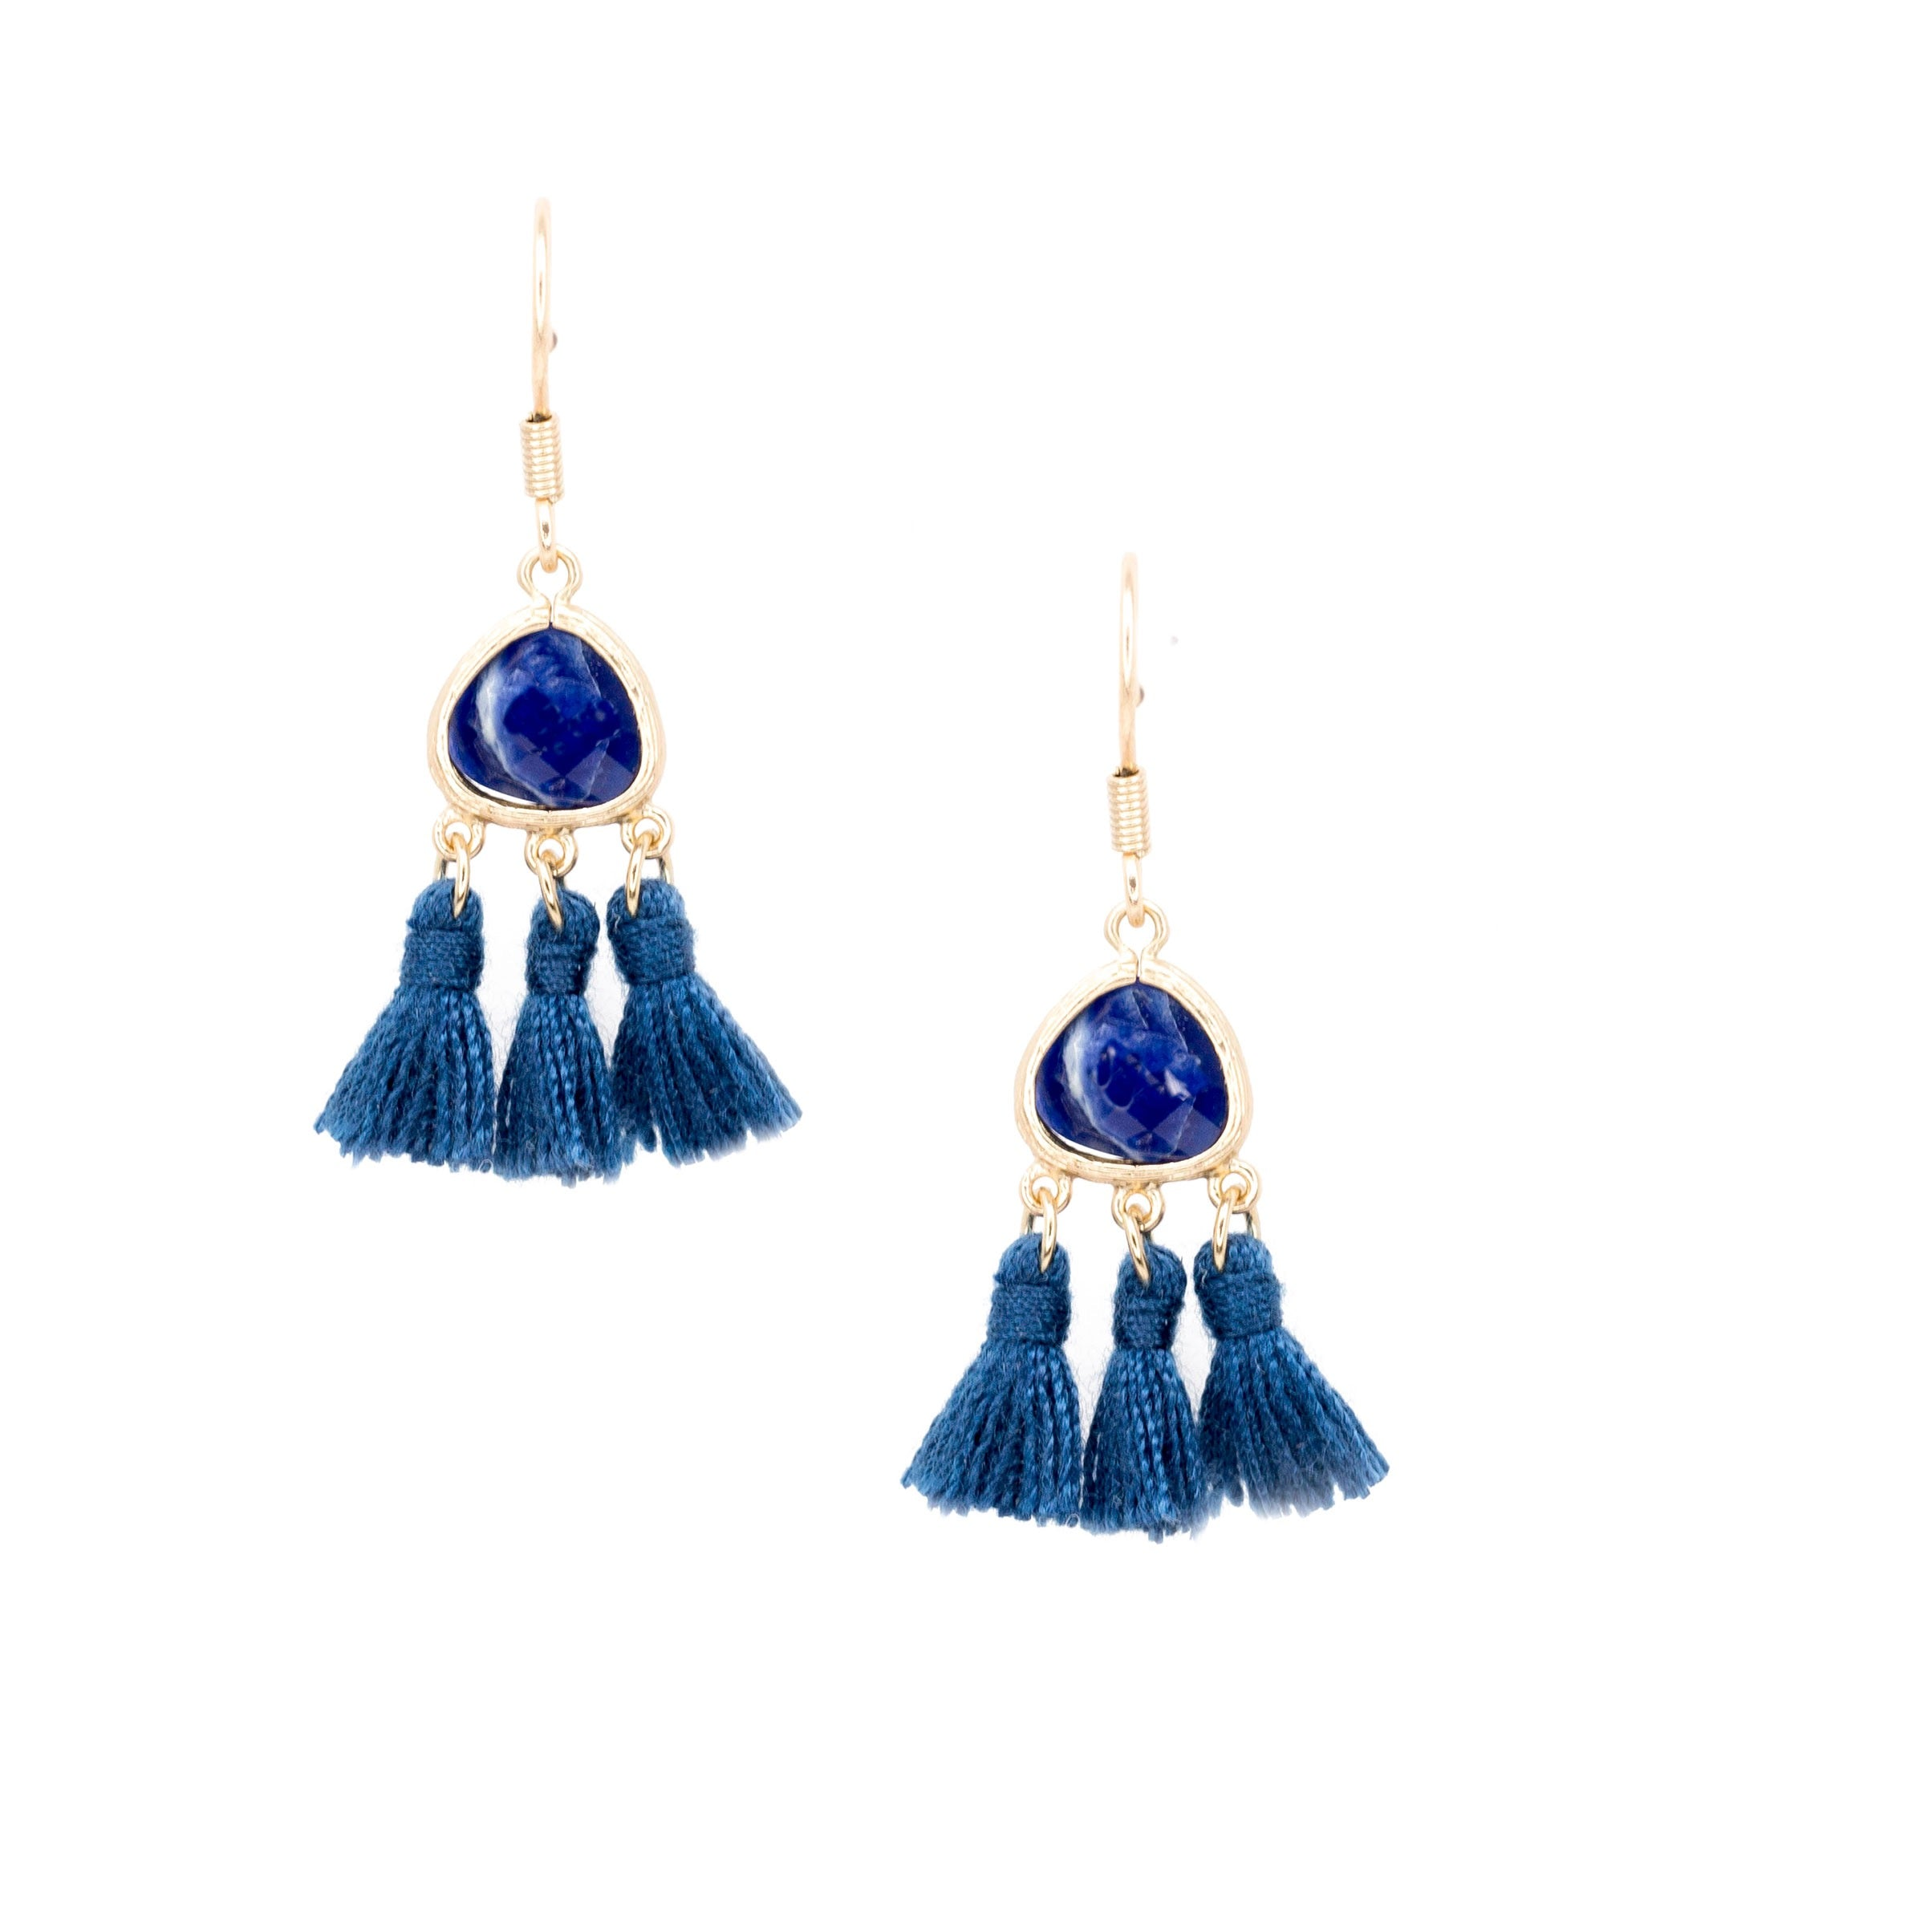 blue mini tassel earrings with stone